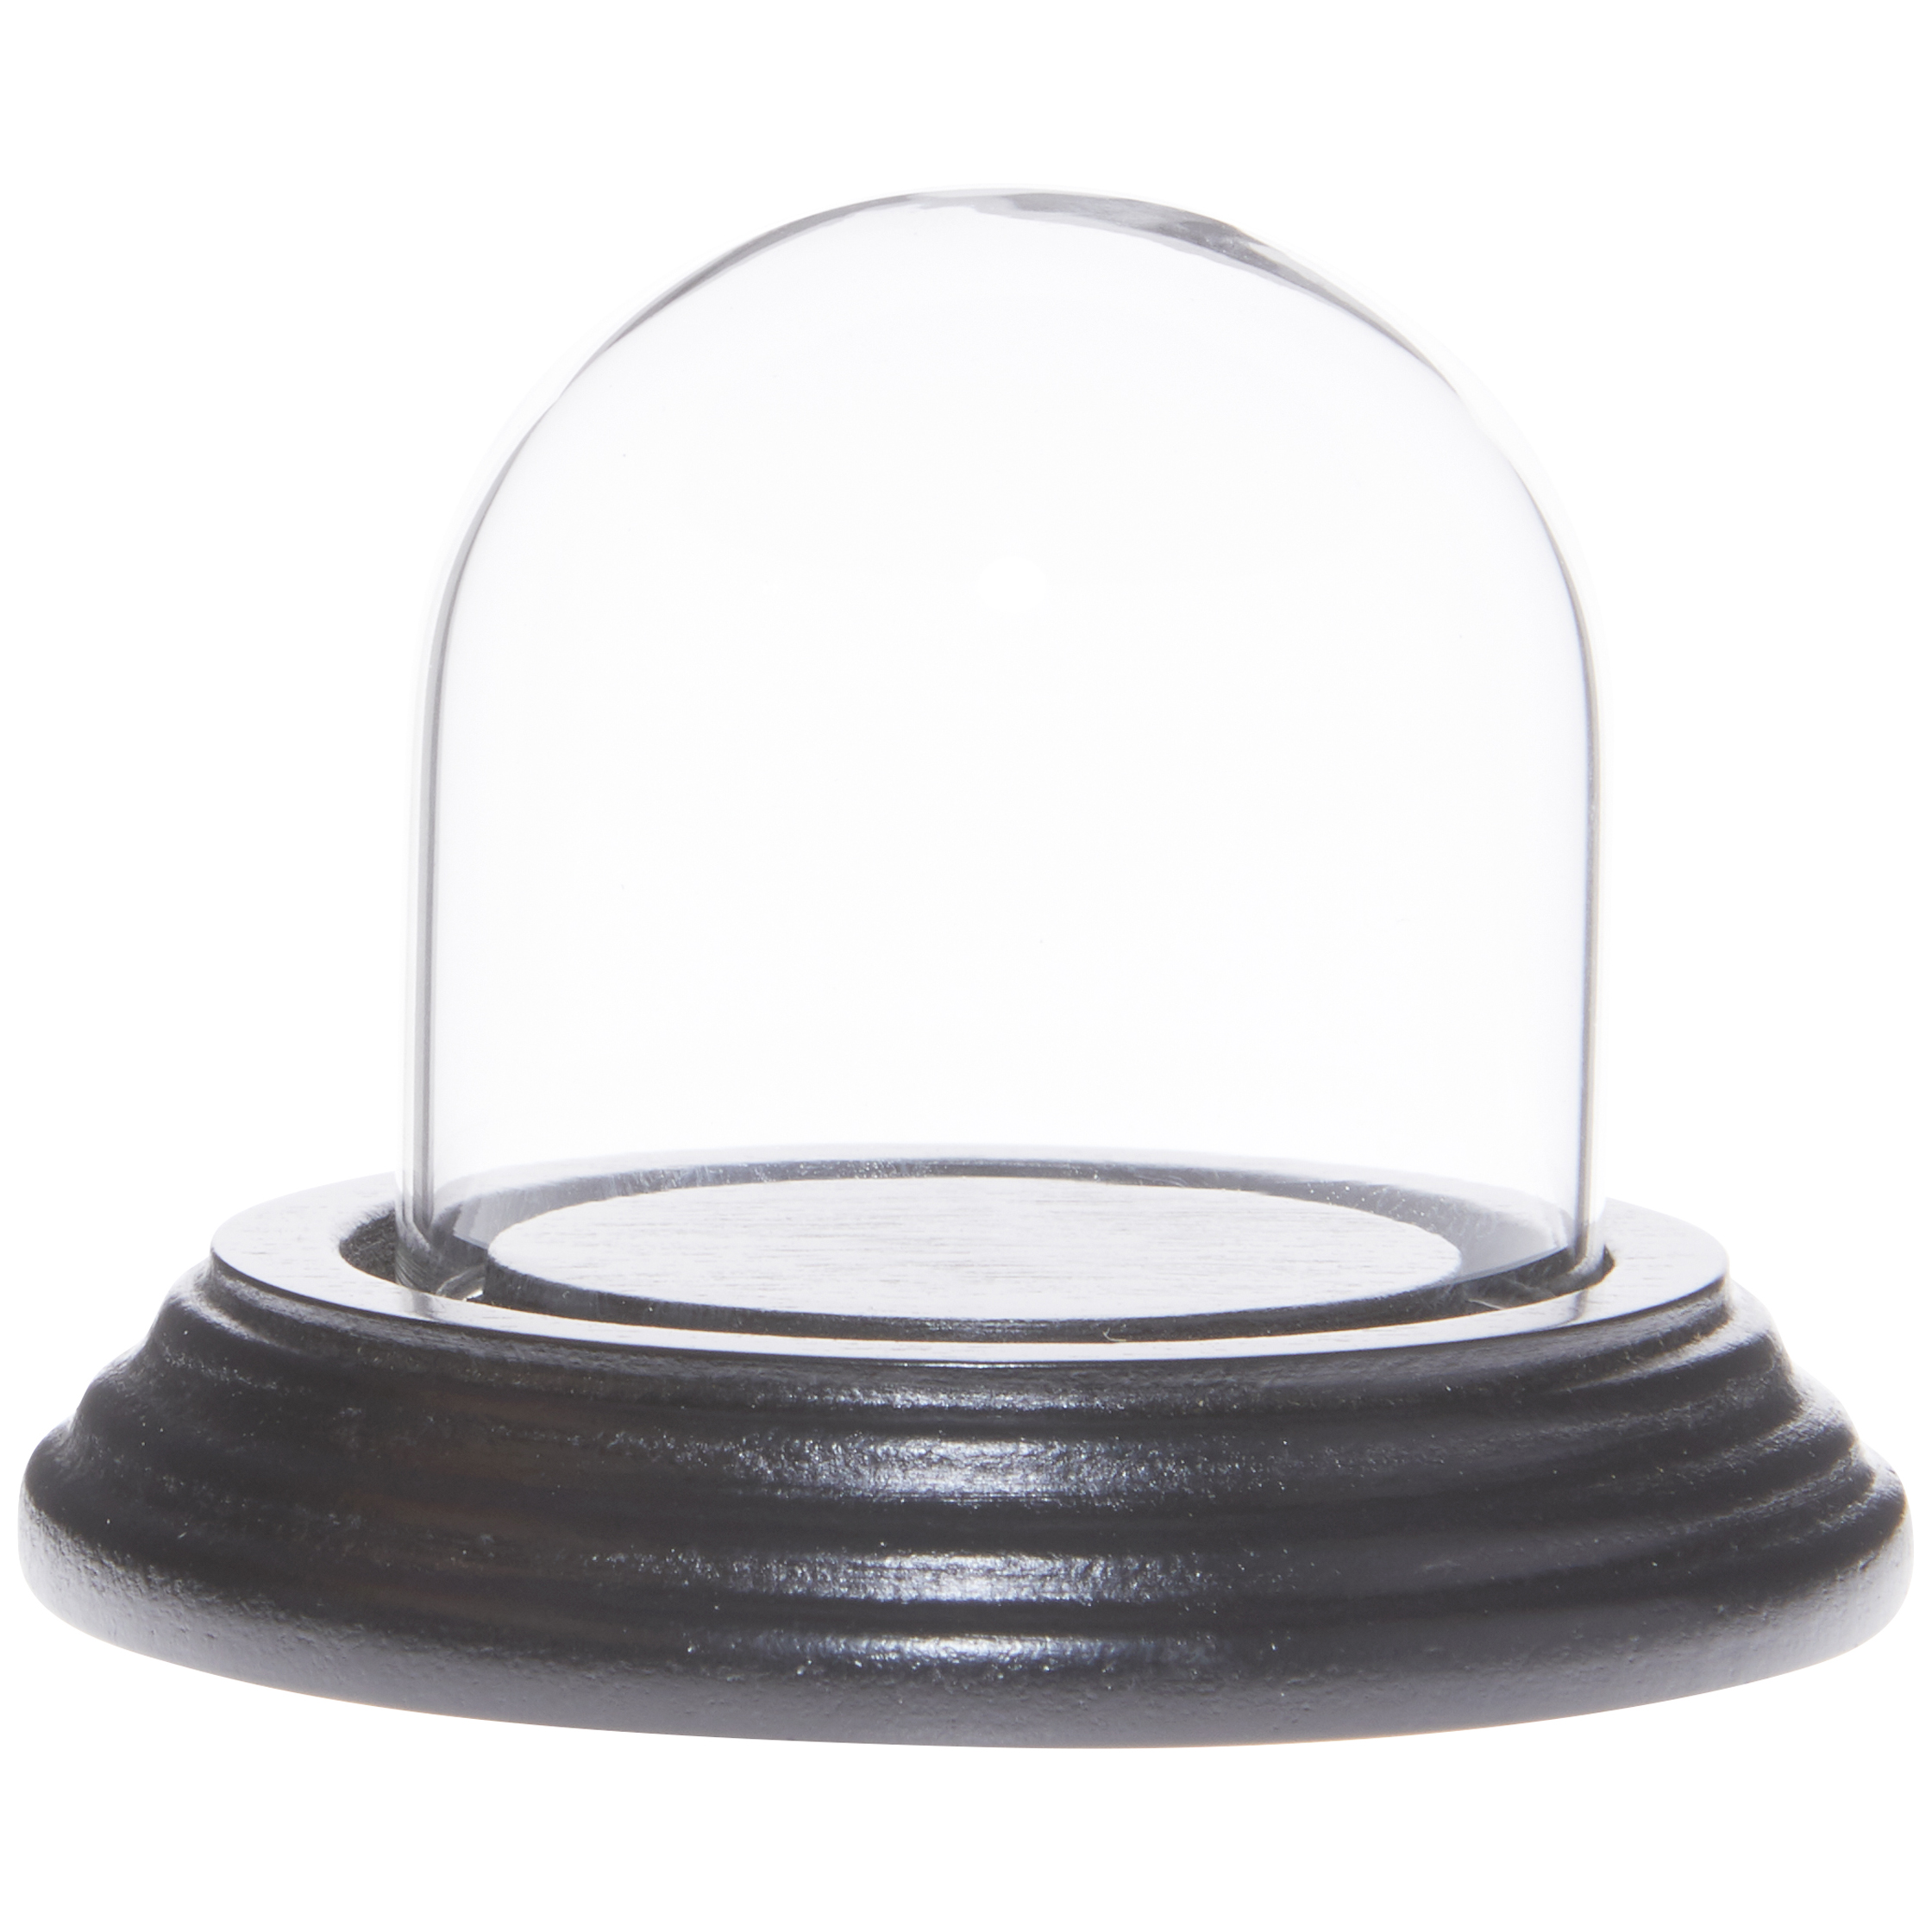 "Plymor 3/"" x 3/"" Glass Display Dome Cloche Black Wood Base"